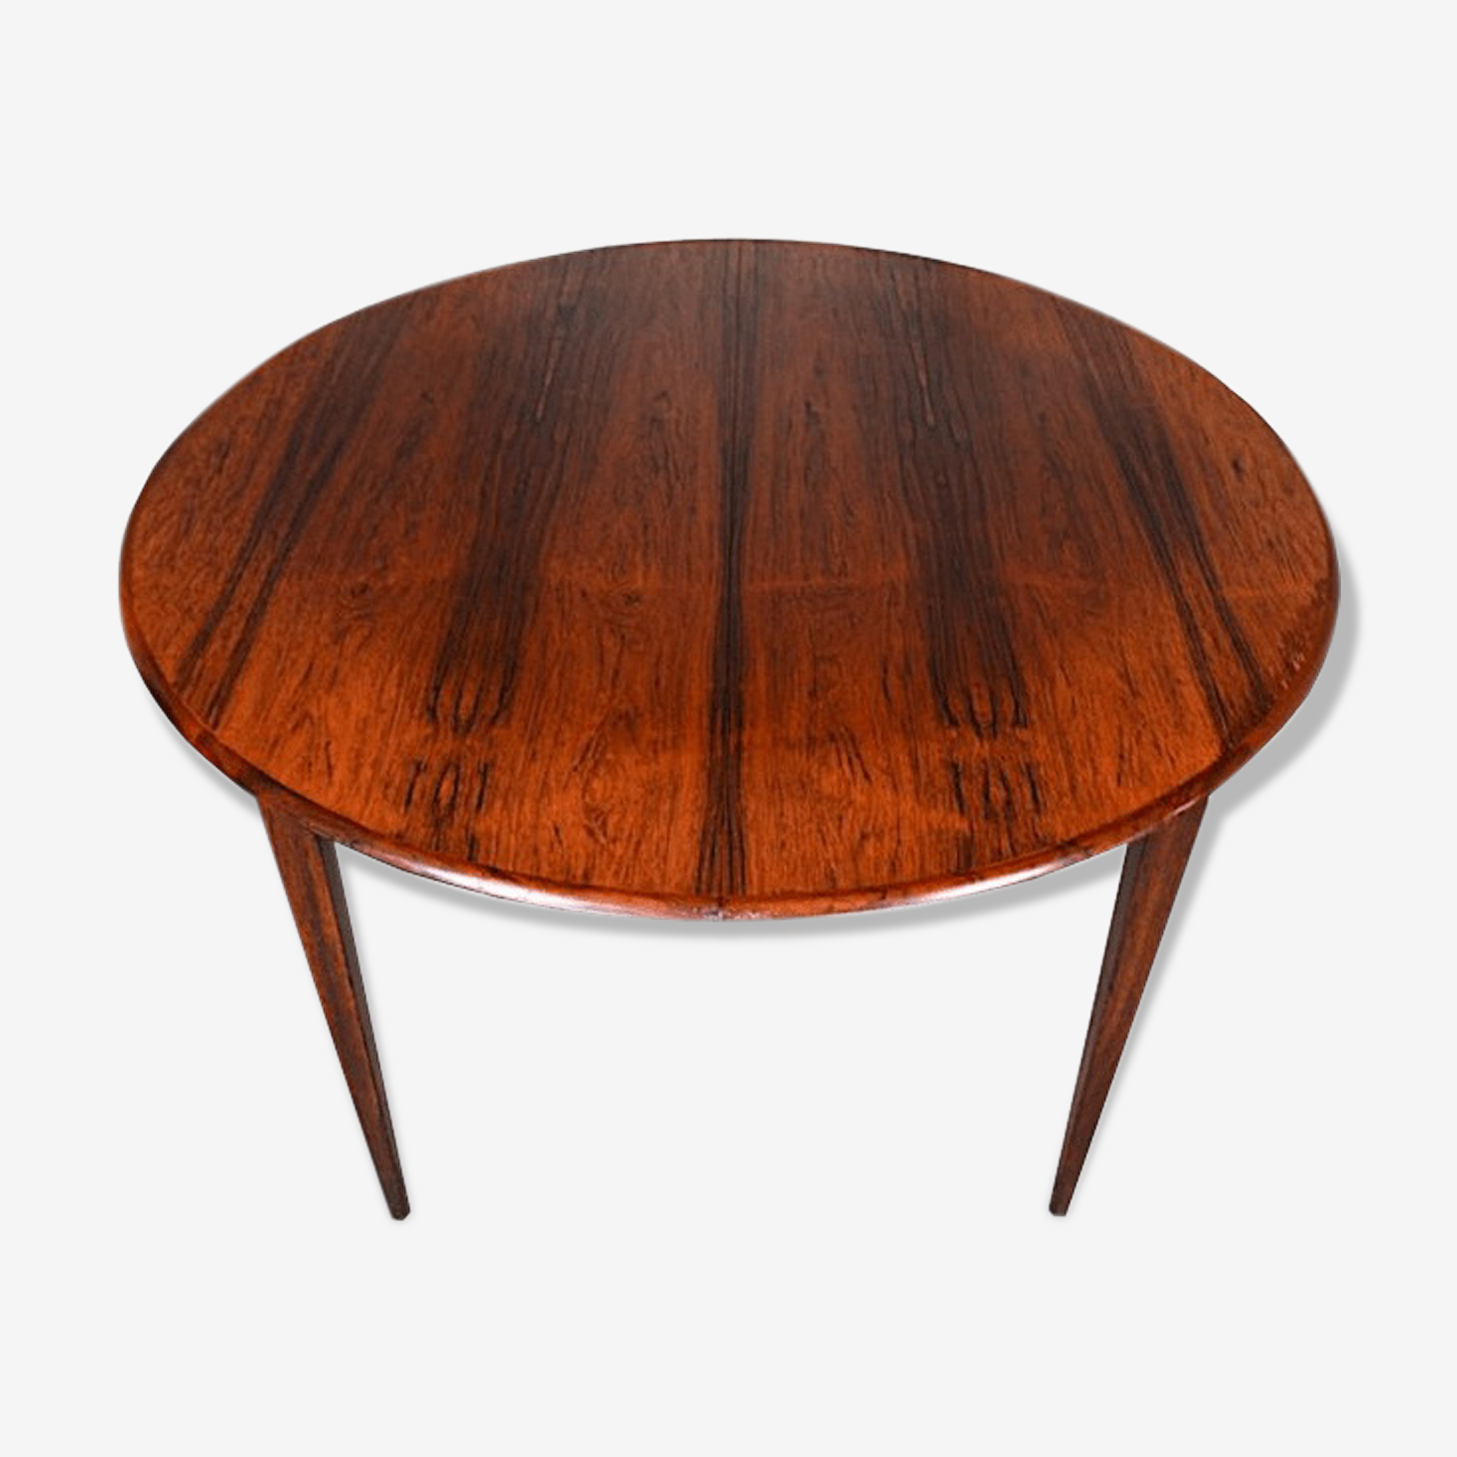 Table en palissandre de Rio Bella design scandinave